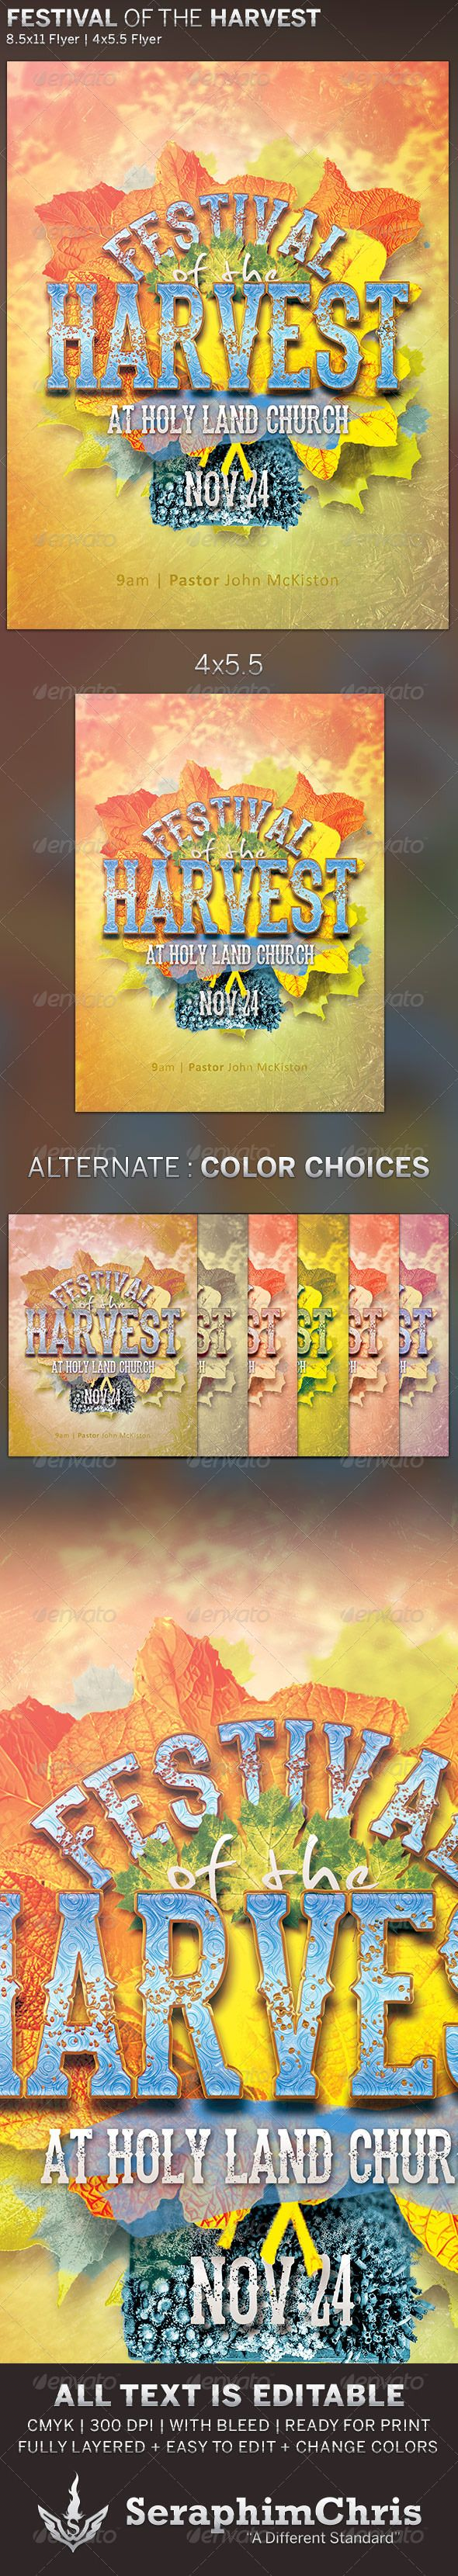 Festival of the Harvest: Church Flyer Template — Photoshop PSD #seasons #dance • Available here → https://graphicriver.net/item/festival-of-the-harvest-church-flyer-template/5842815?ref=pxcr